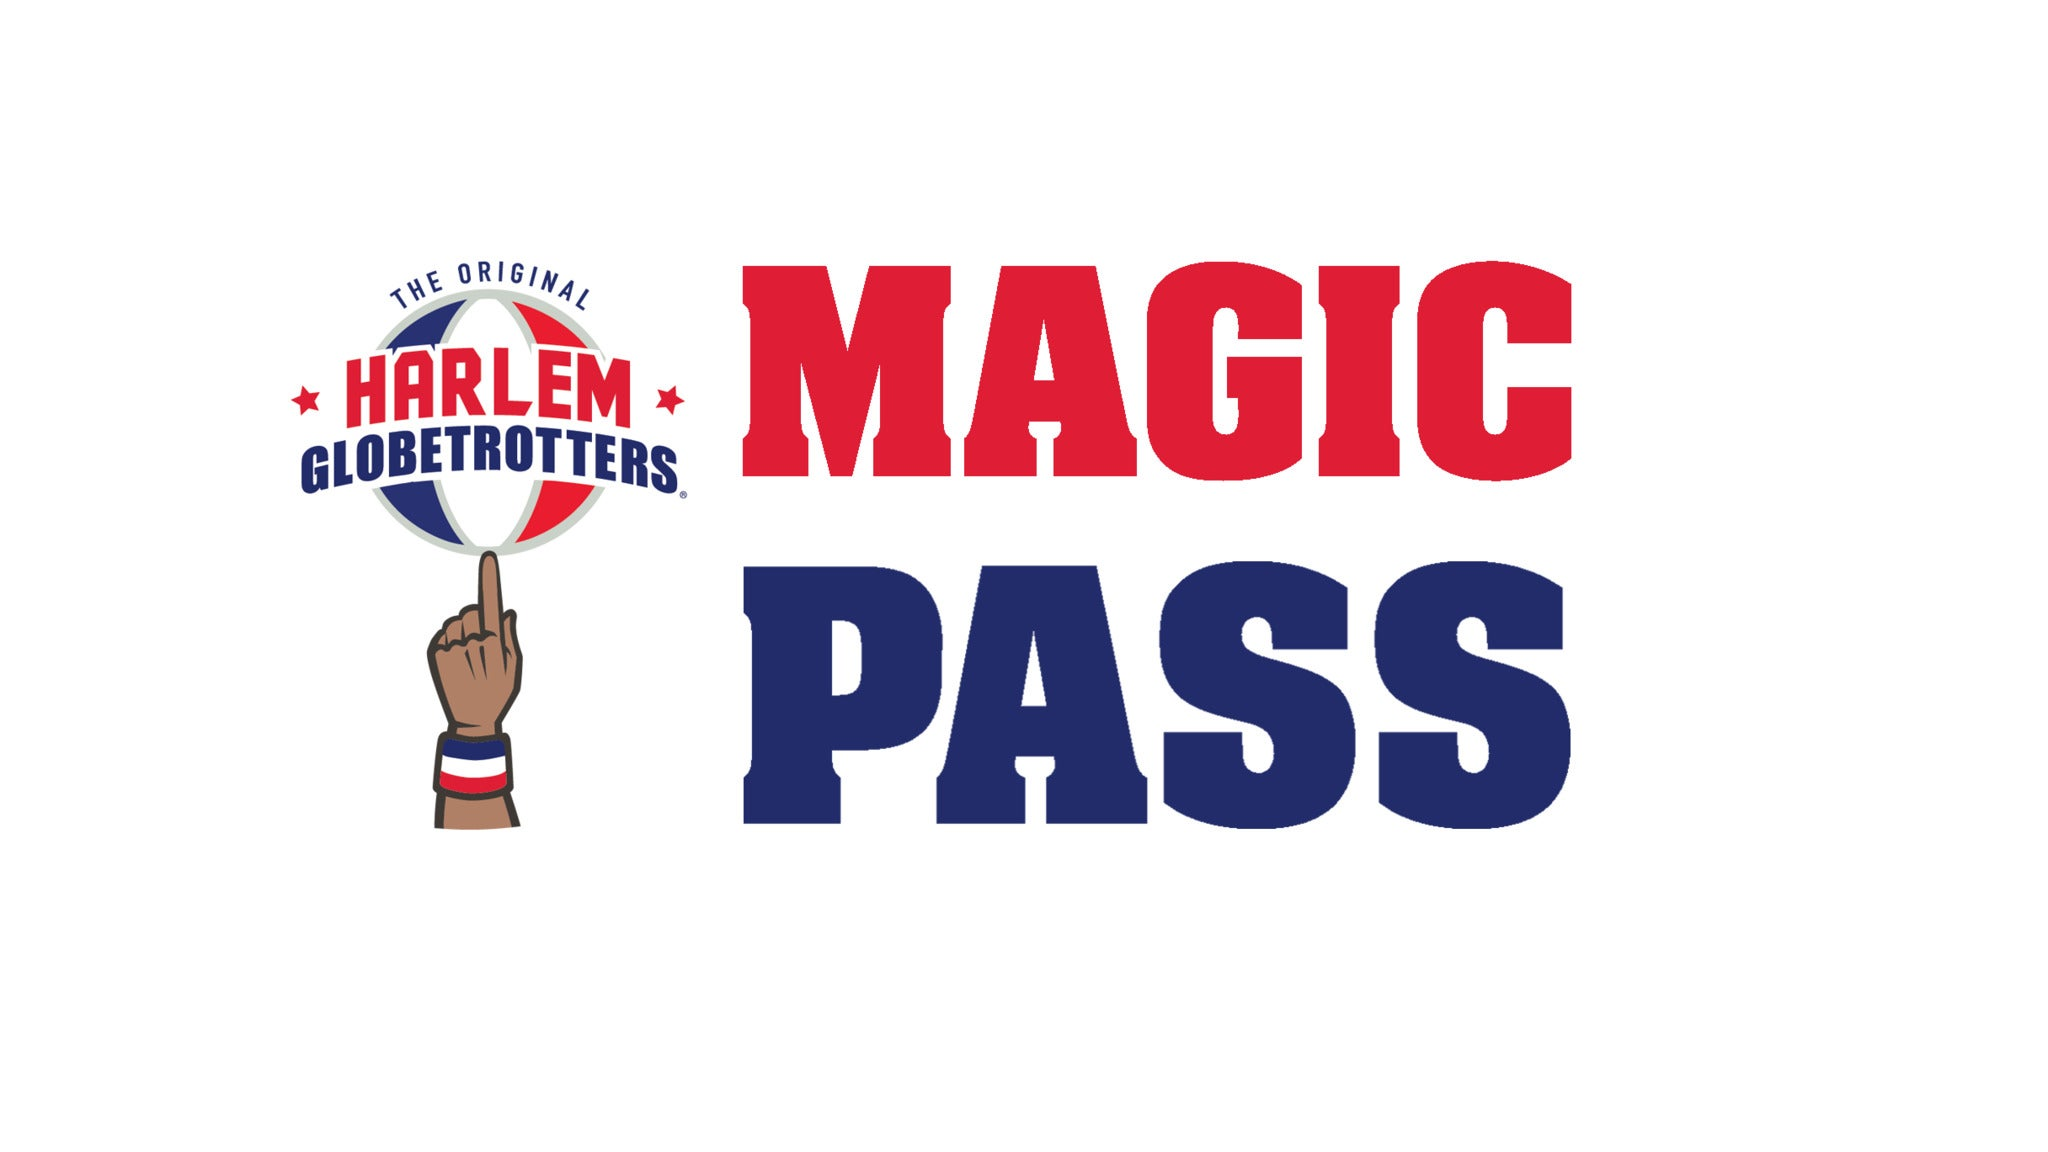 Magic Pass: 30-Minute Interactive Event From 12:30pm-1:00pm